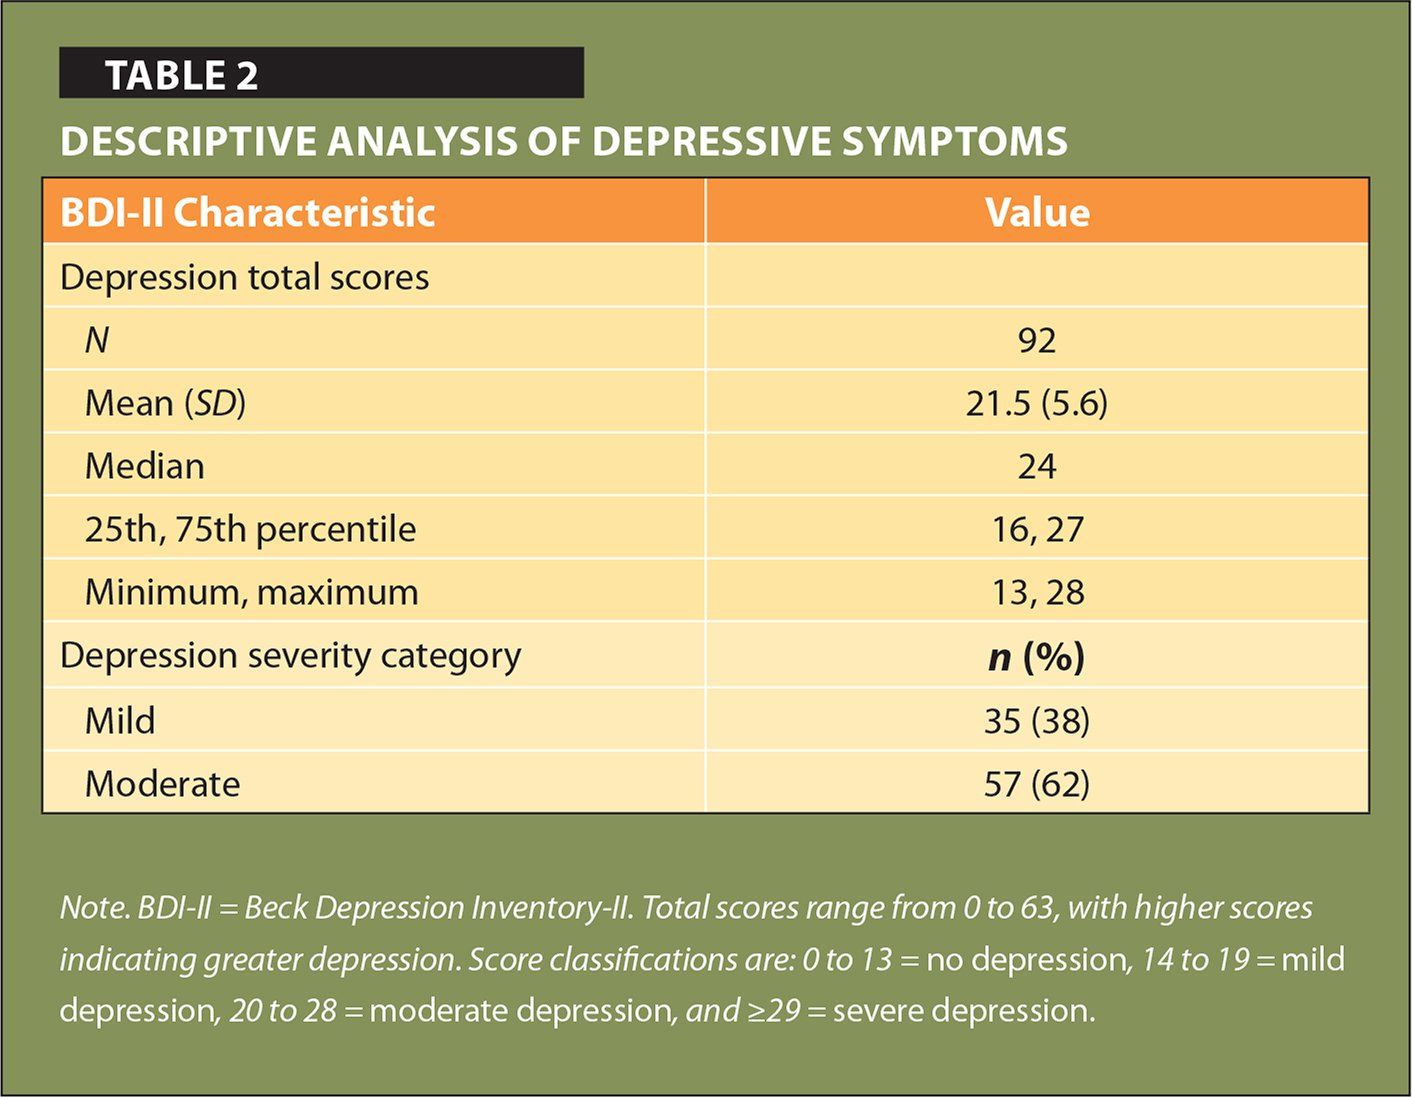 Descriptive Analysis of Depressive Symptoms